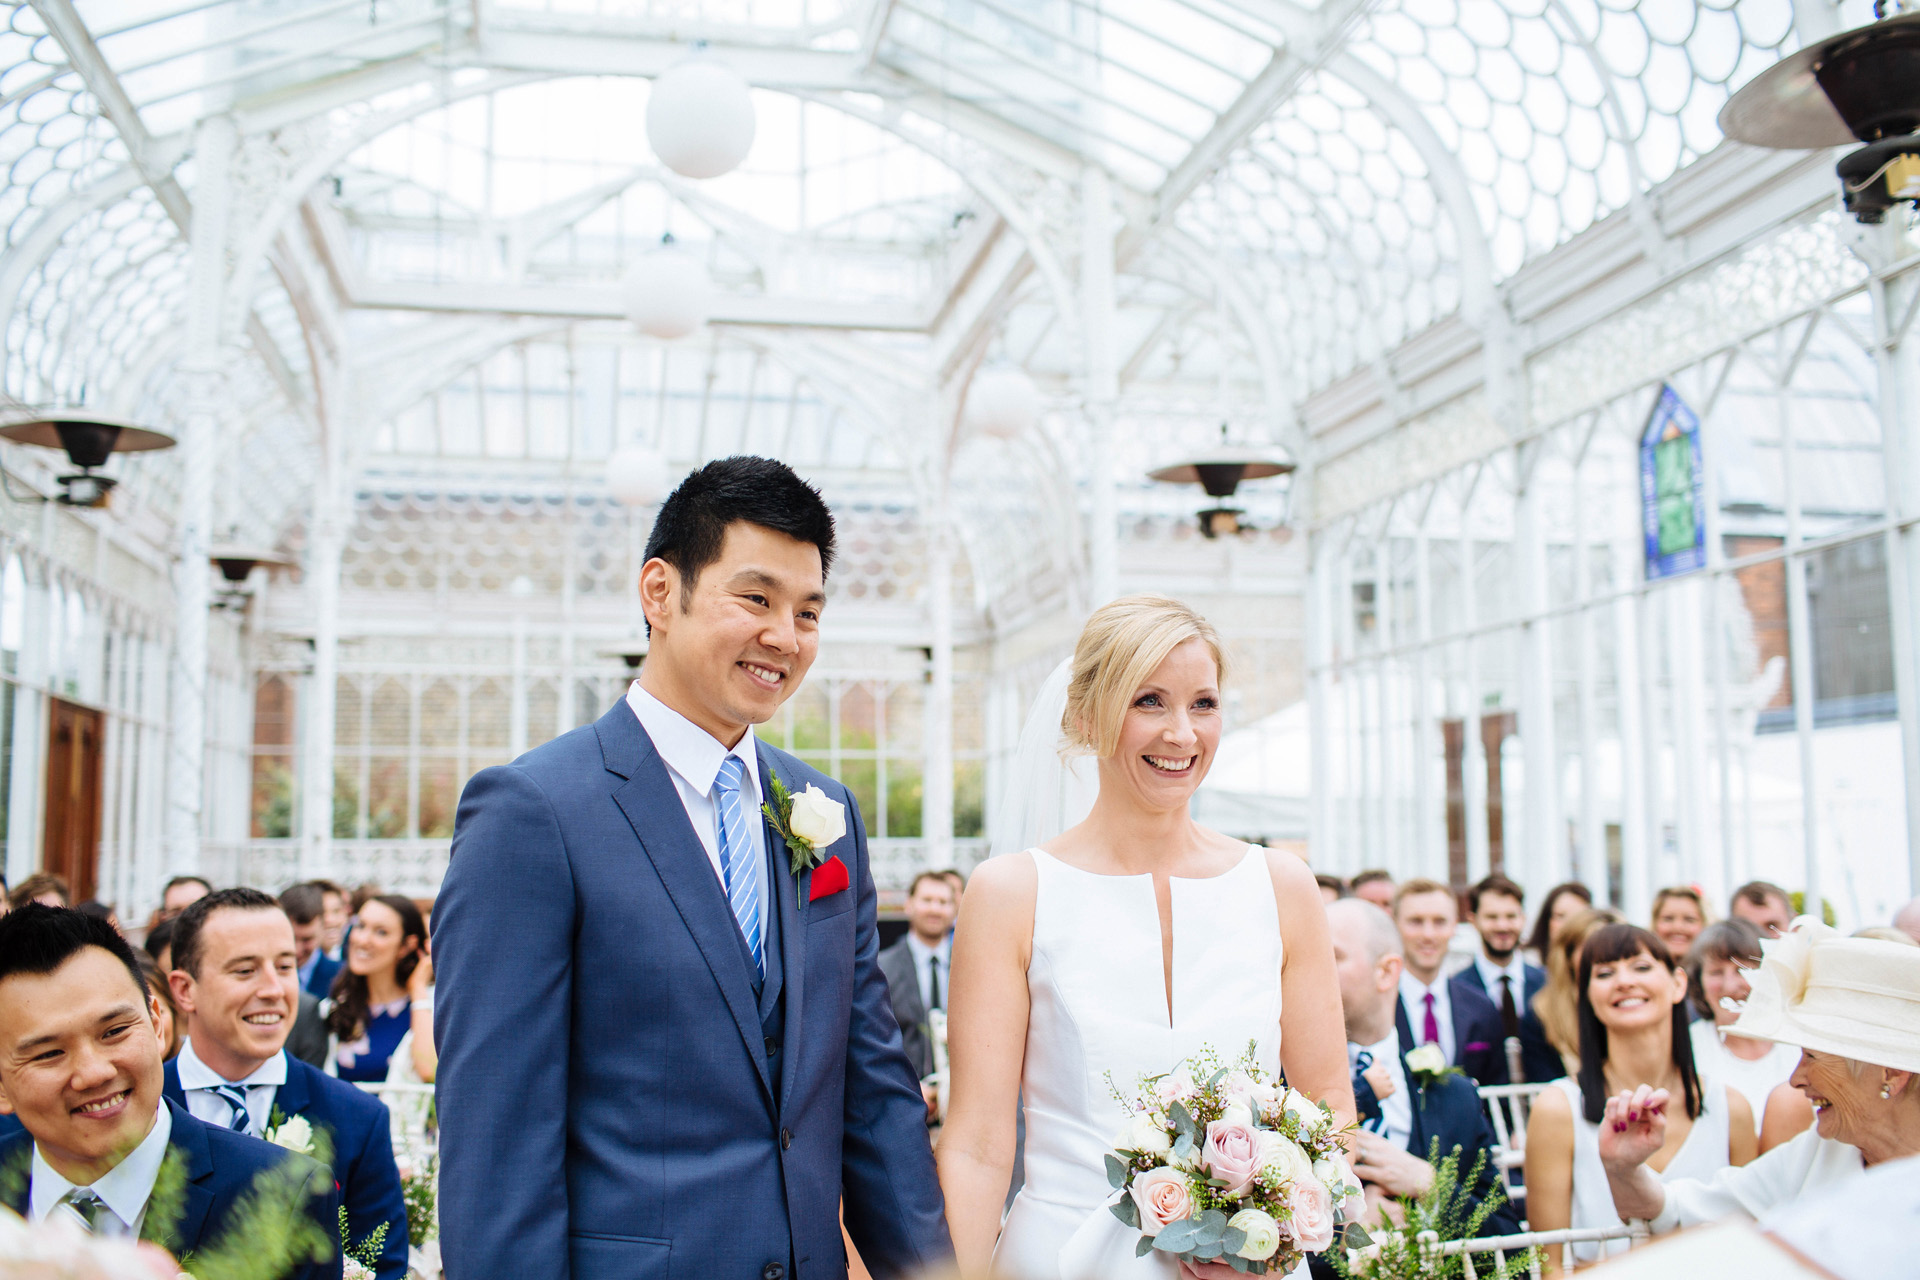 bride and groom smiling in wedding ceremony in a big glass greenhouse